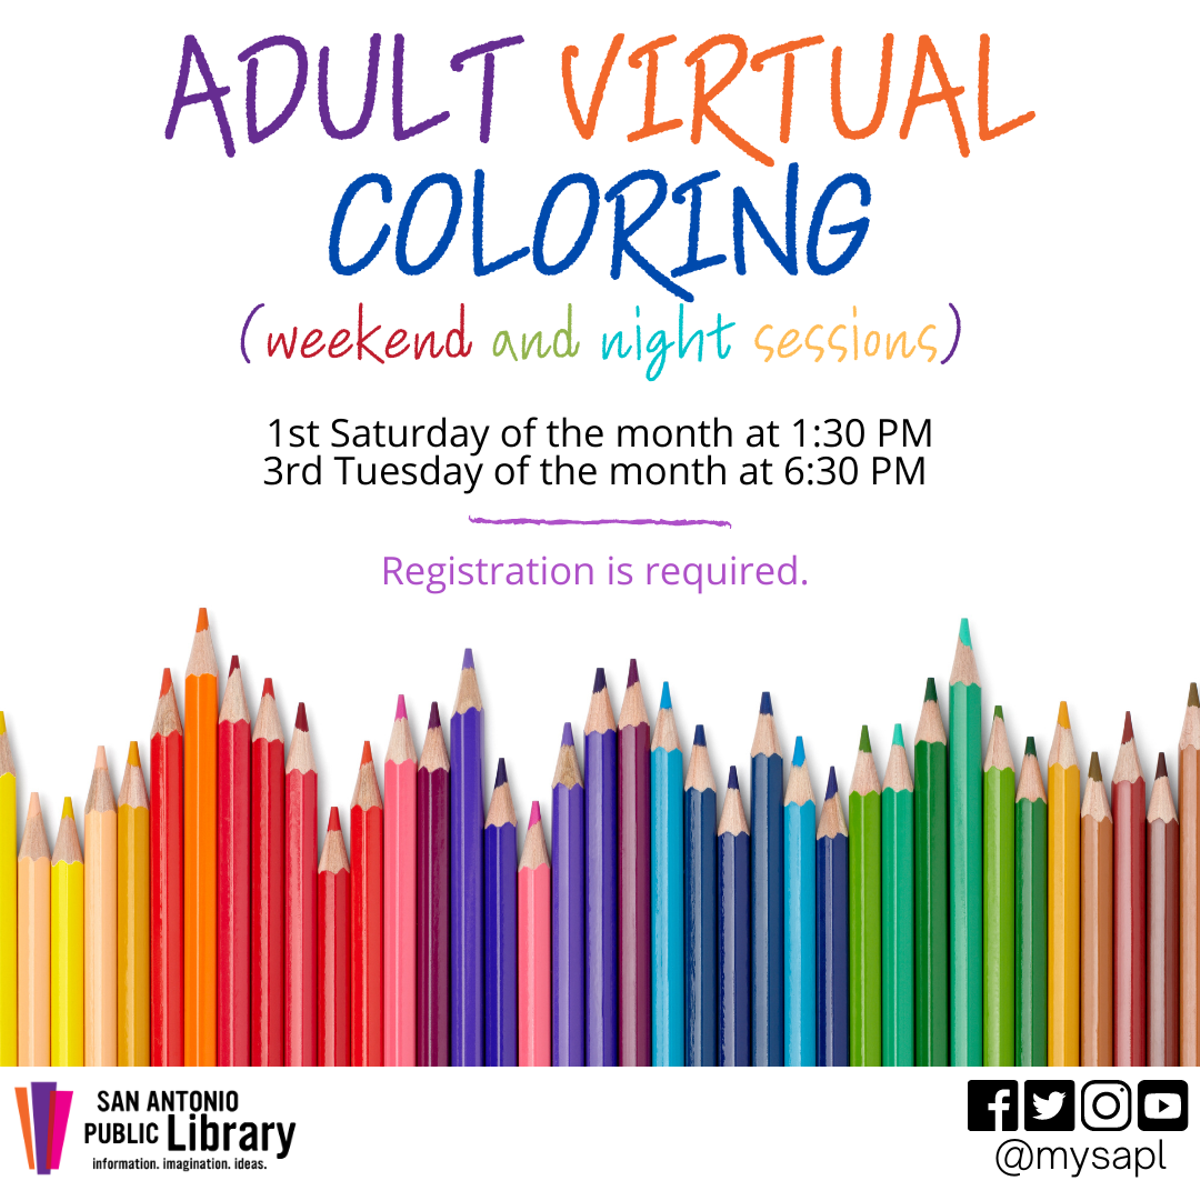 Adult Virtual Coloring (weekend and night sessions)